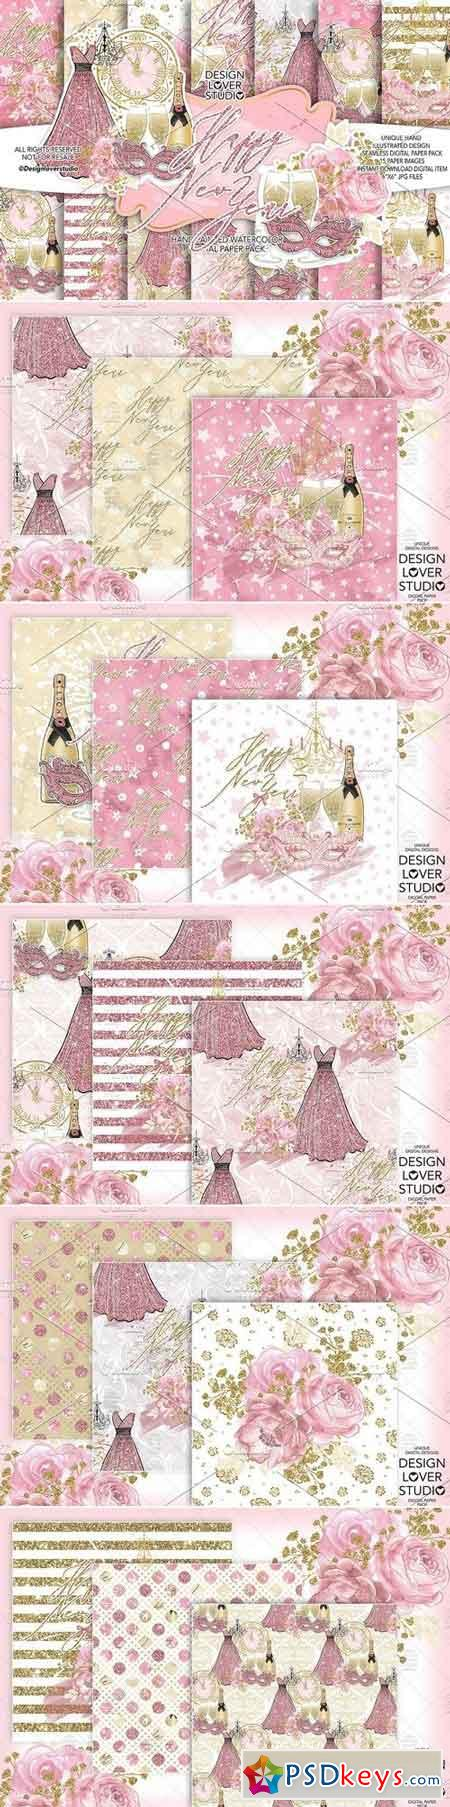 Happy New Year digital paper pack 3100942